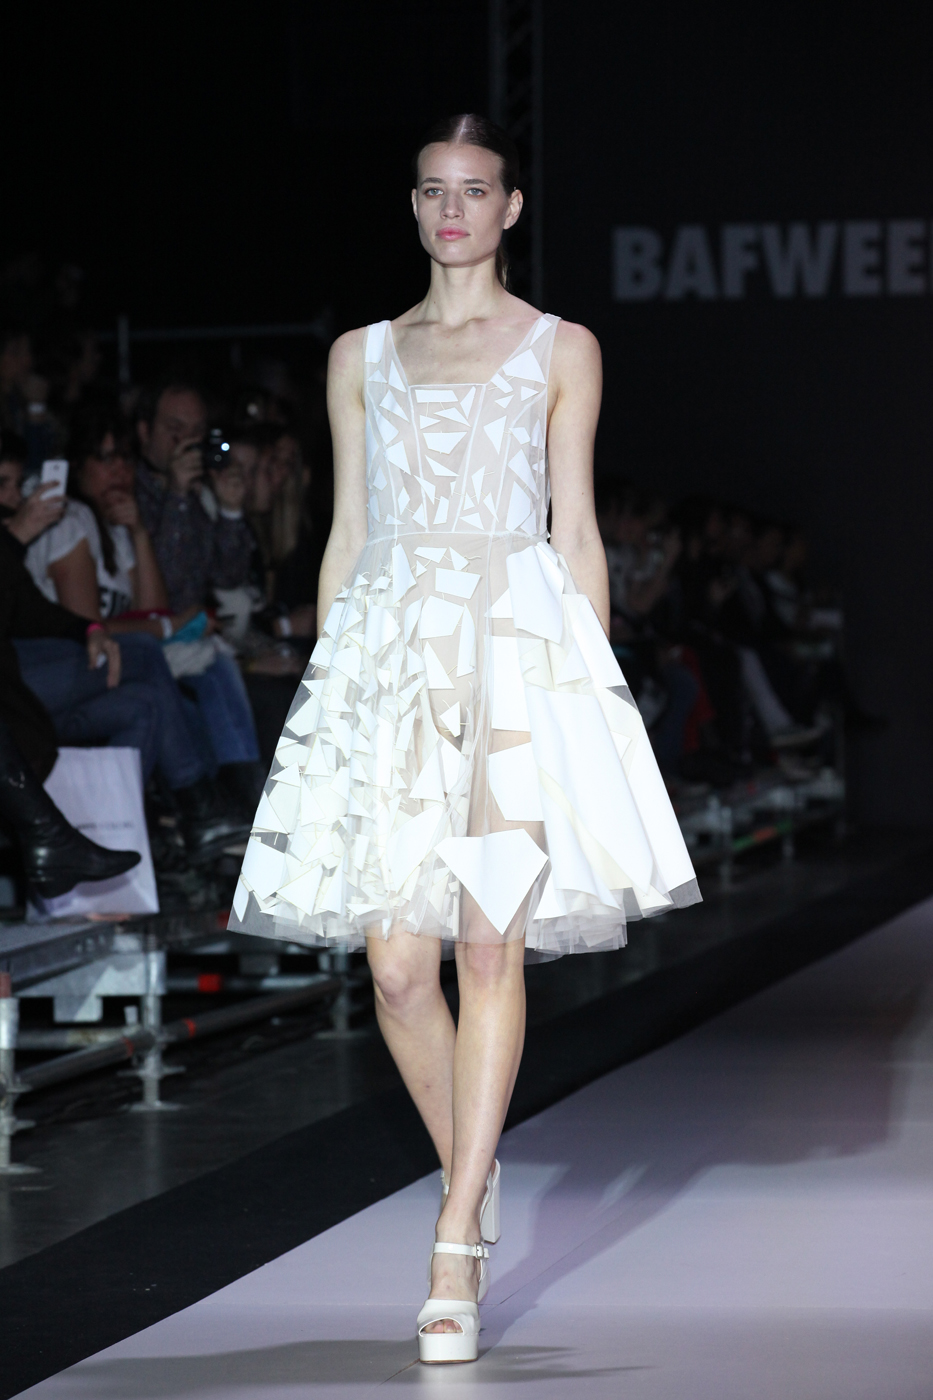 maria-vazquez-bafweek-fashion-diaries